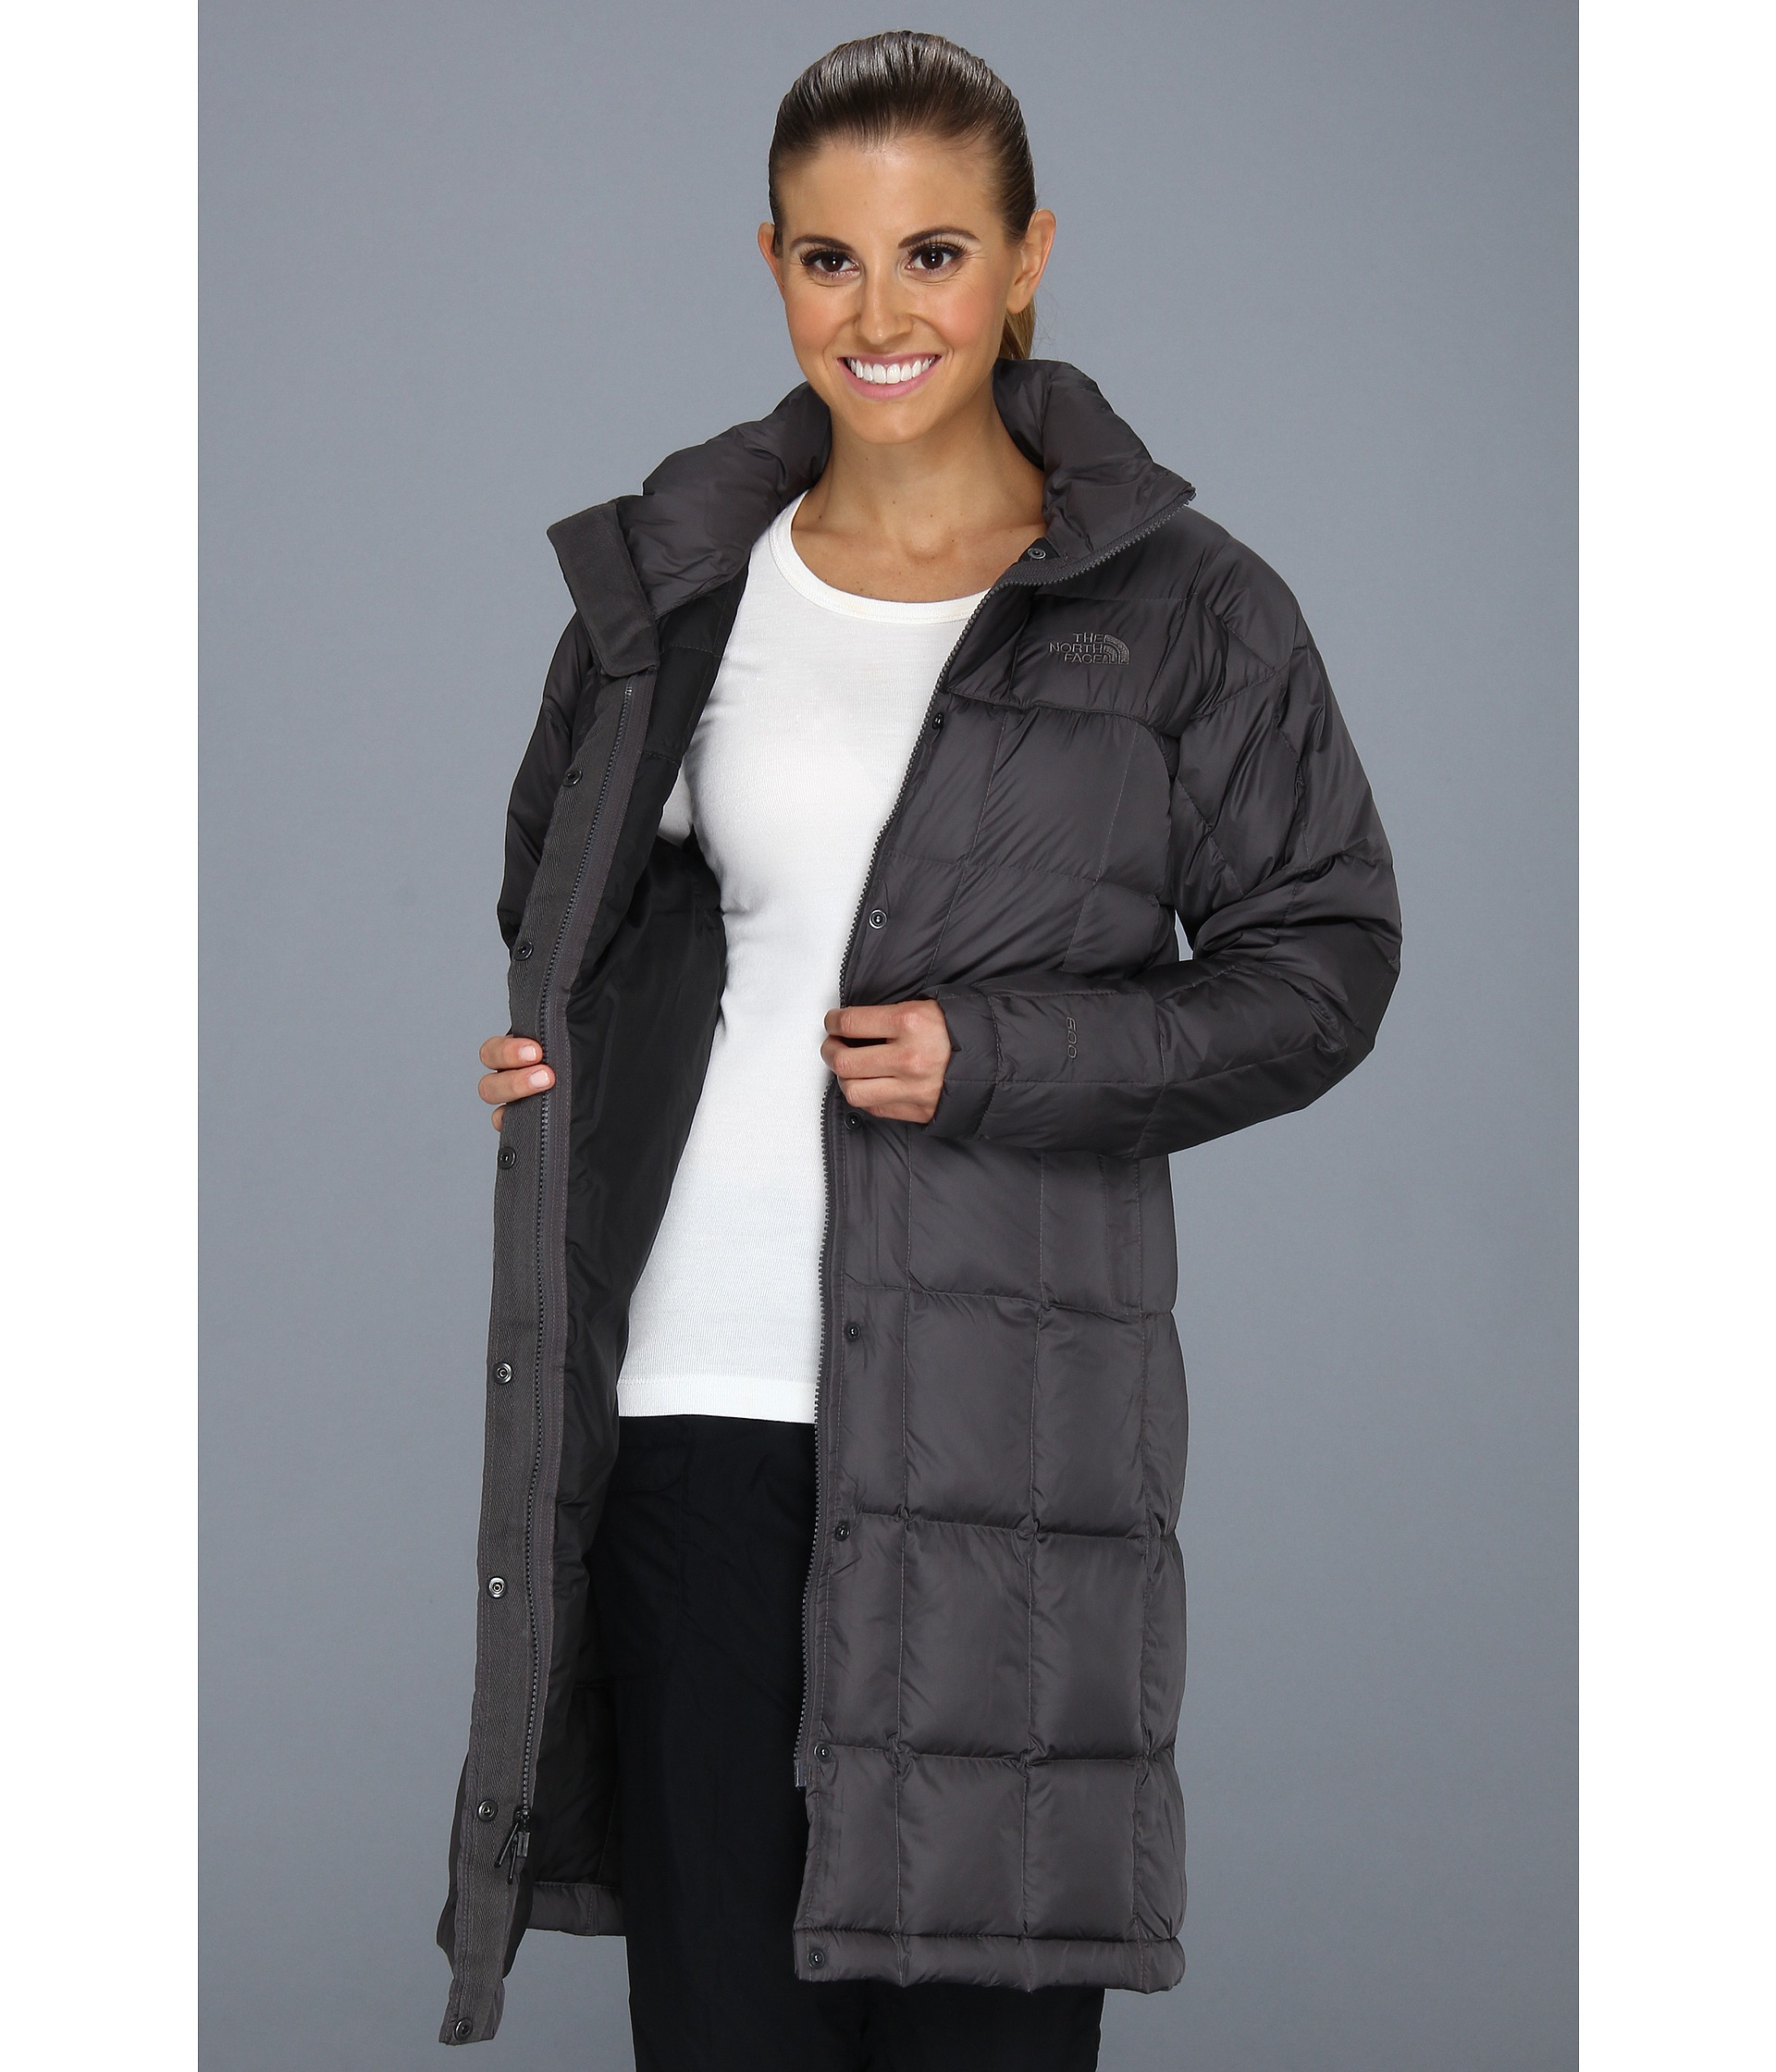 b81c927c The North Face Metropolis Parka in Gray - Lyst